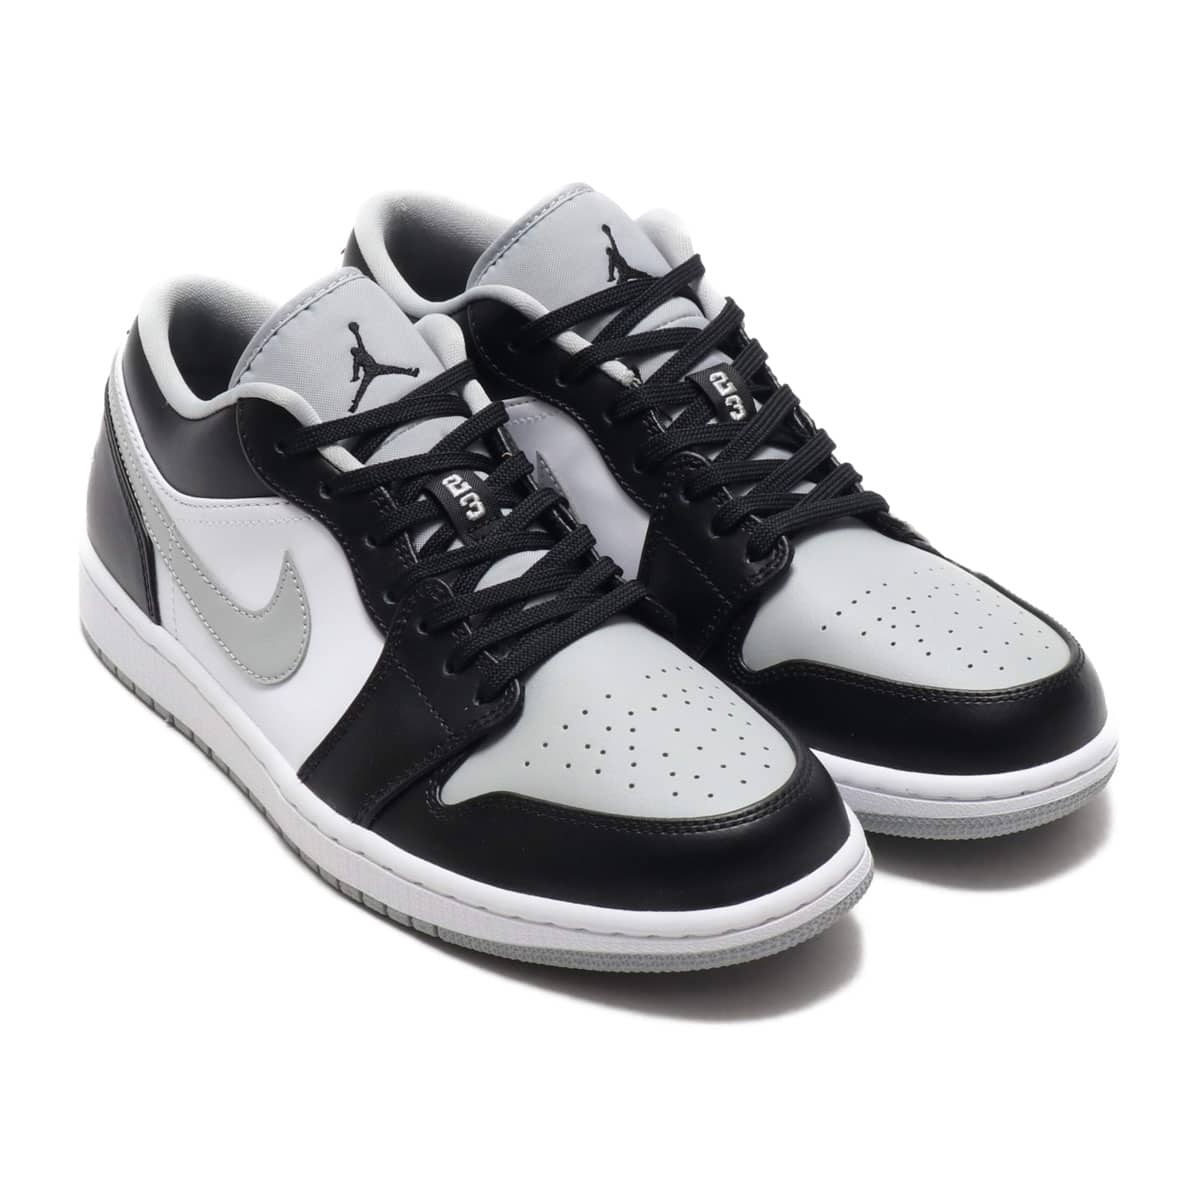 JORDAN BRAND AIR JORDAN 1 LOW BLACK/BLACK-LT SMOKE GREY-WHITE 20SU-S_photo_large